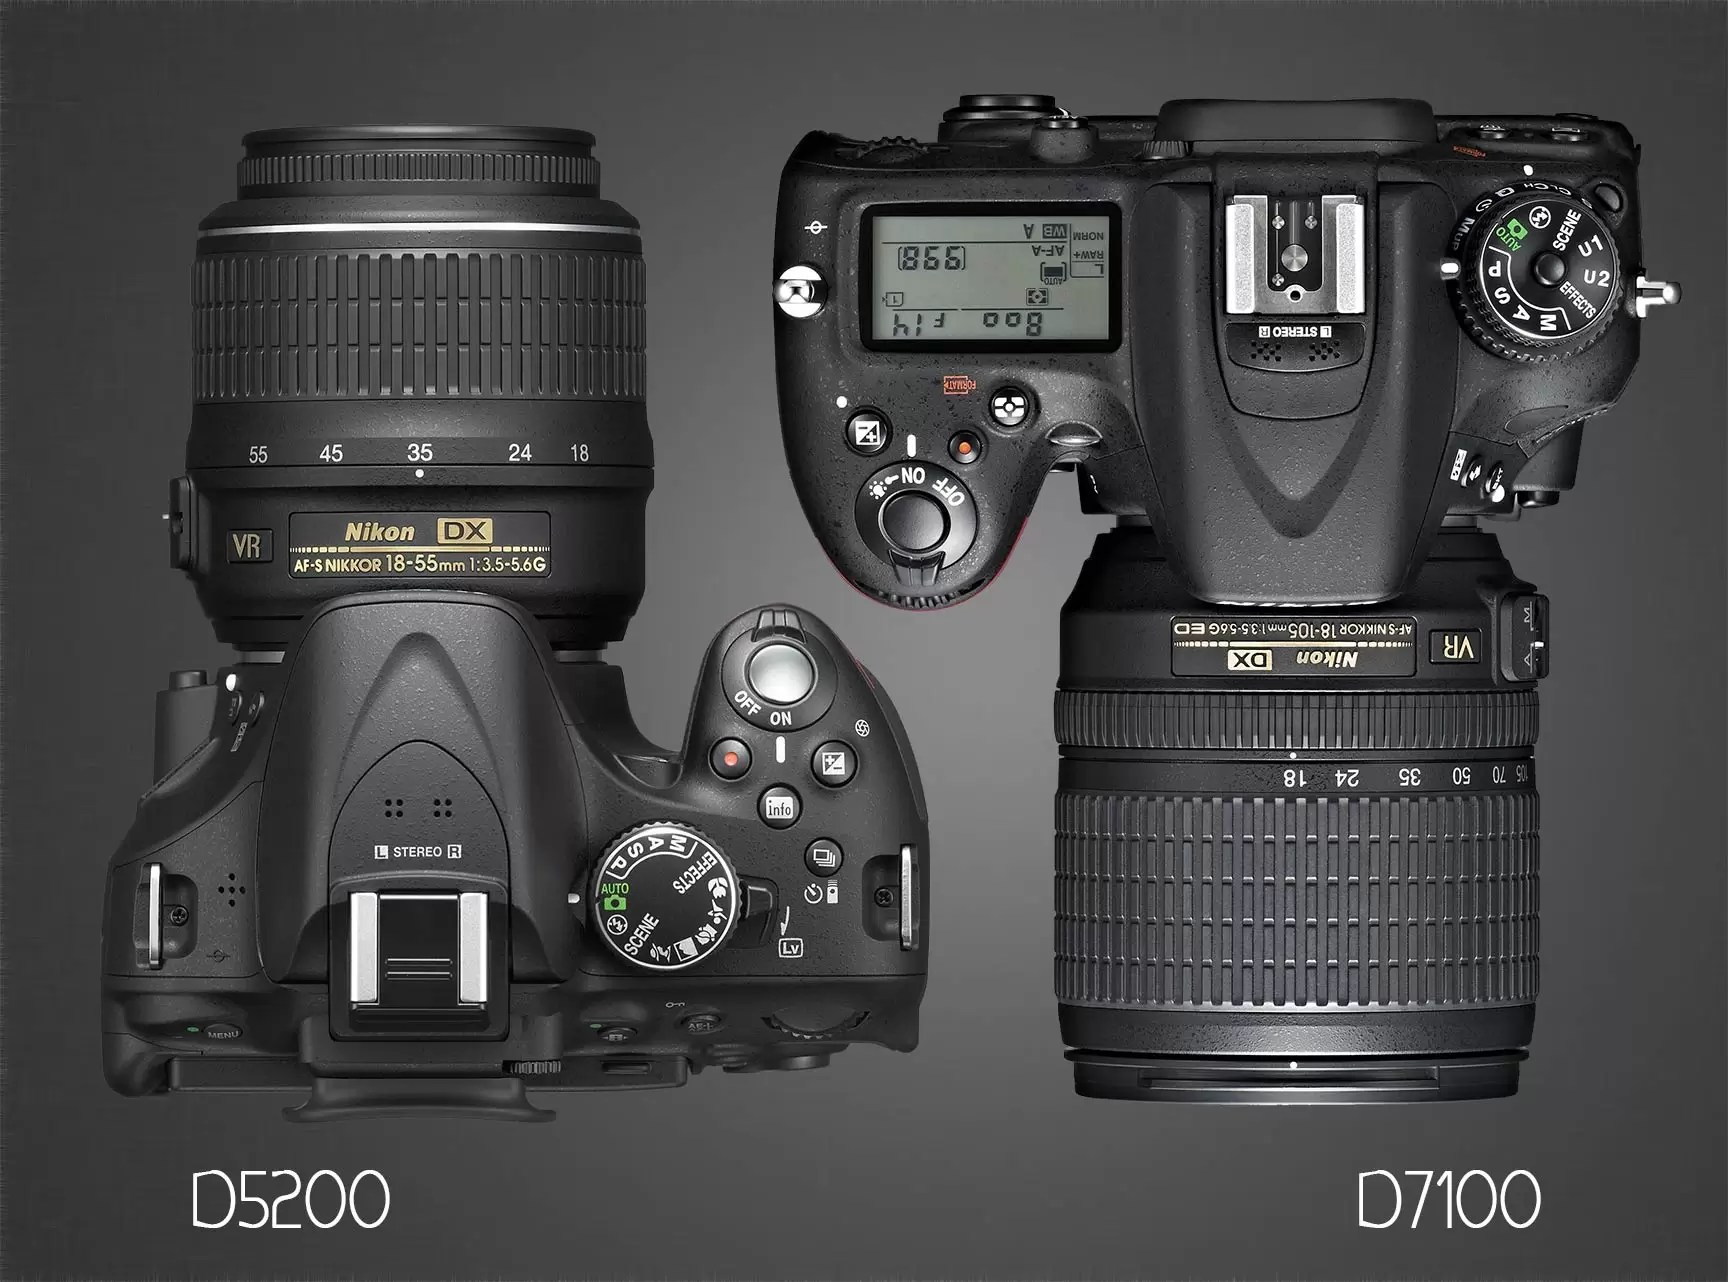 Nikon D5200 vs D7100 : Which Should You Buy?